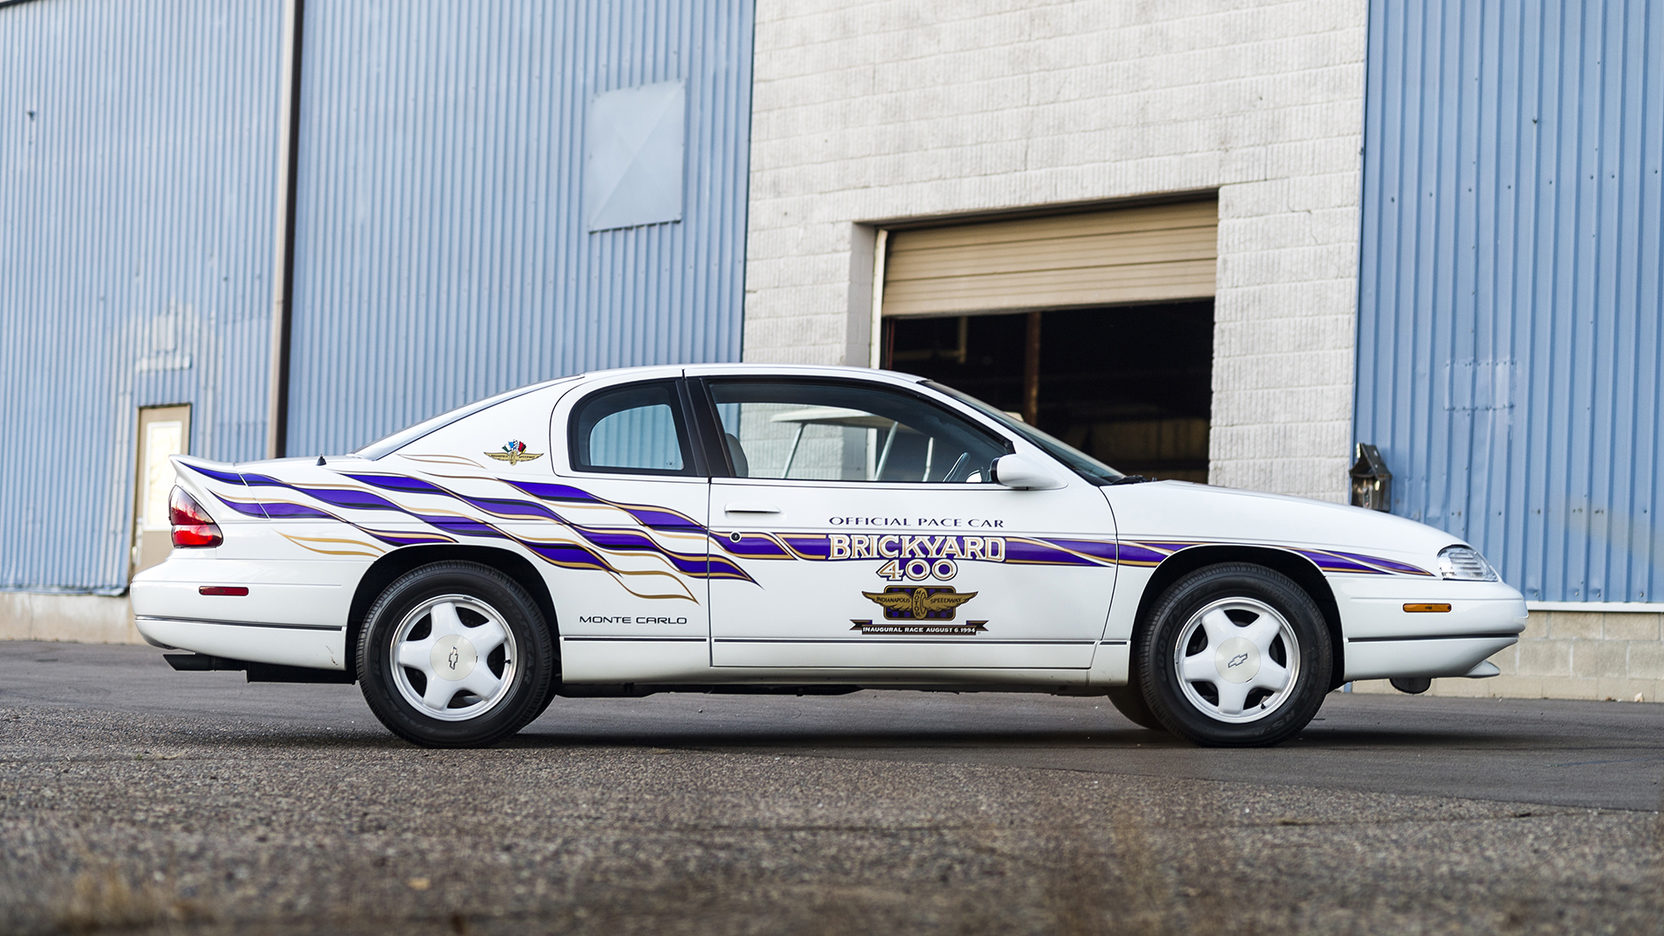 hight resolution of 1995 chevrolet monte carlo z34 pace car edition 8 full screen